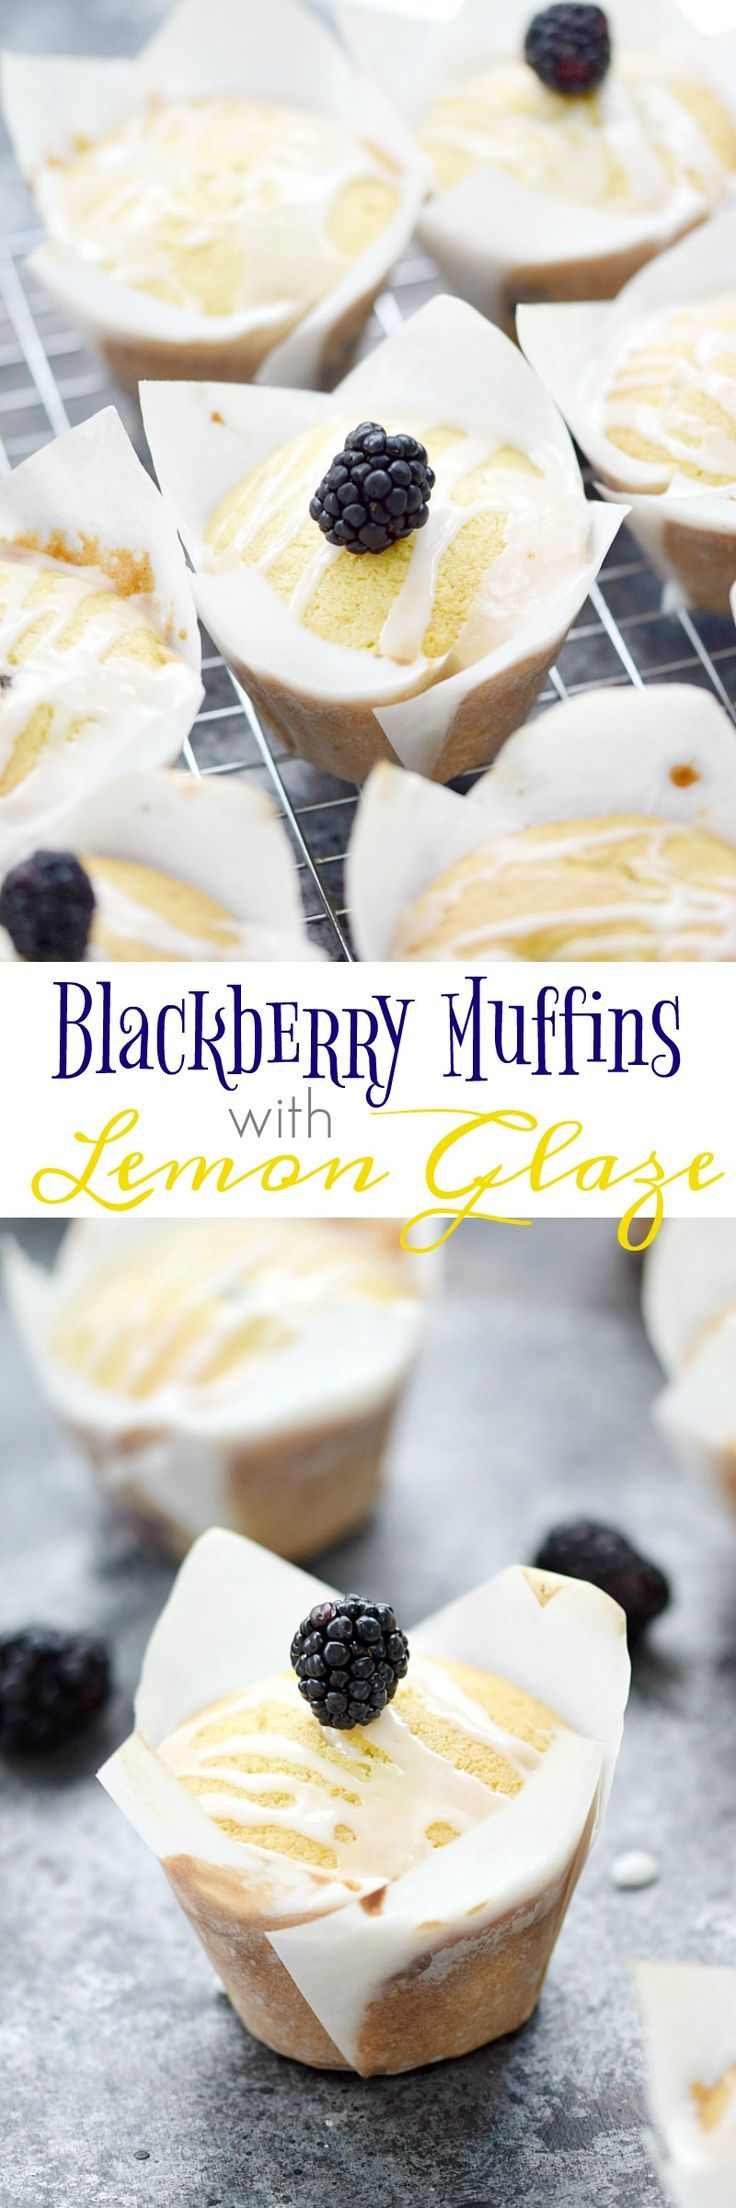 Bakery style muffins studded with blackberries and topped with a lemon glaze, make these Blackberry Muffins with Lemon Glaze a perfect breakfast treat | http://cookingwithcurls.com